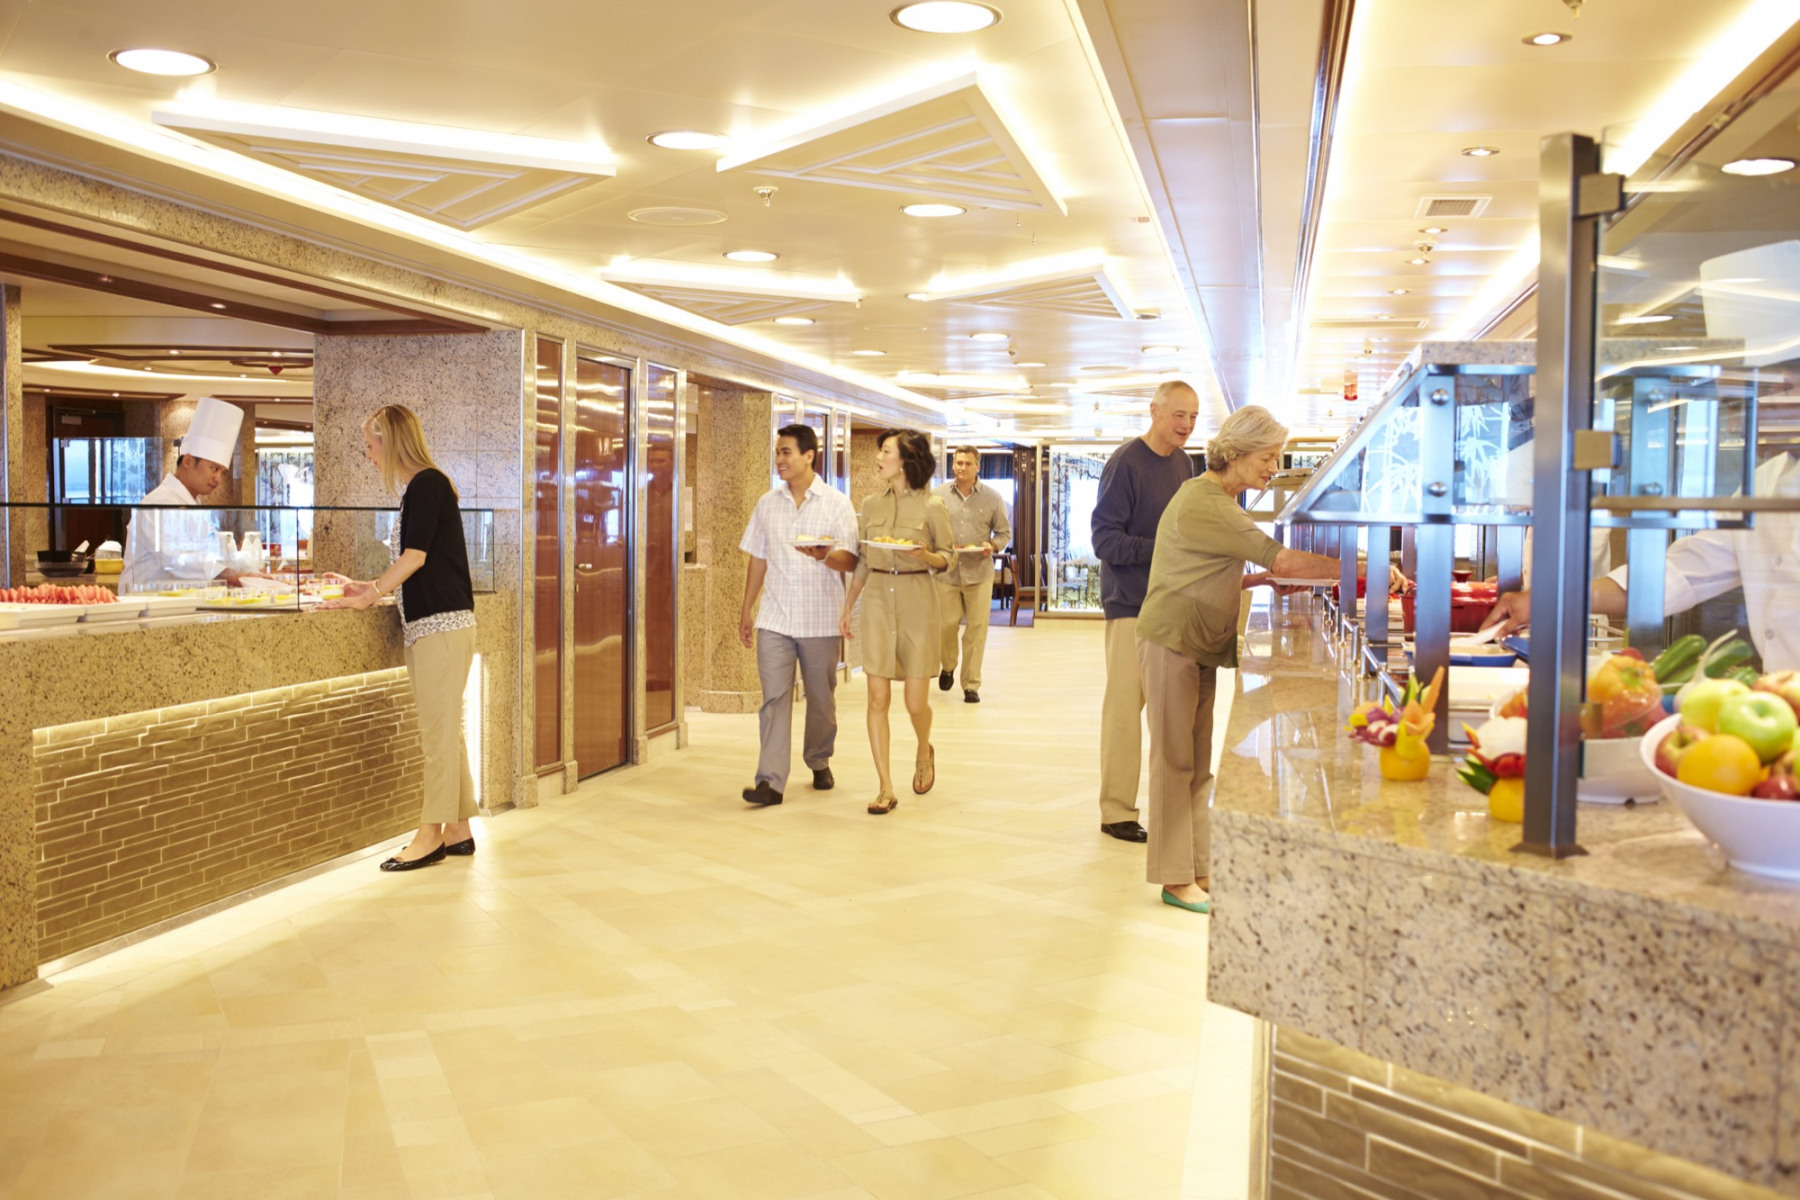 Princess Cruises Coral Class Interior Horizon Court.jpg